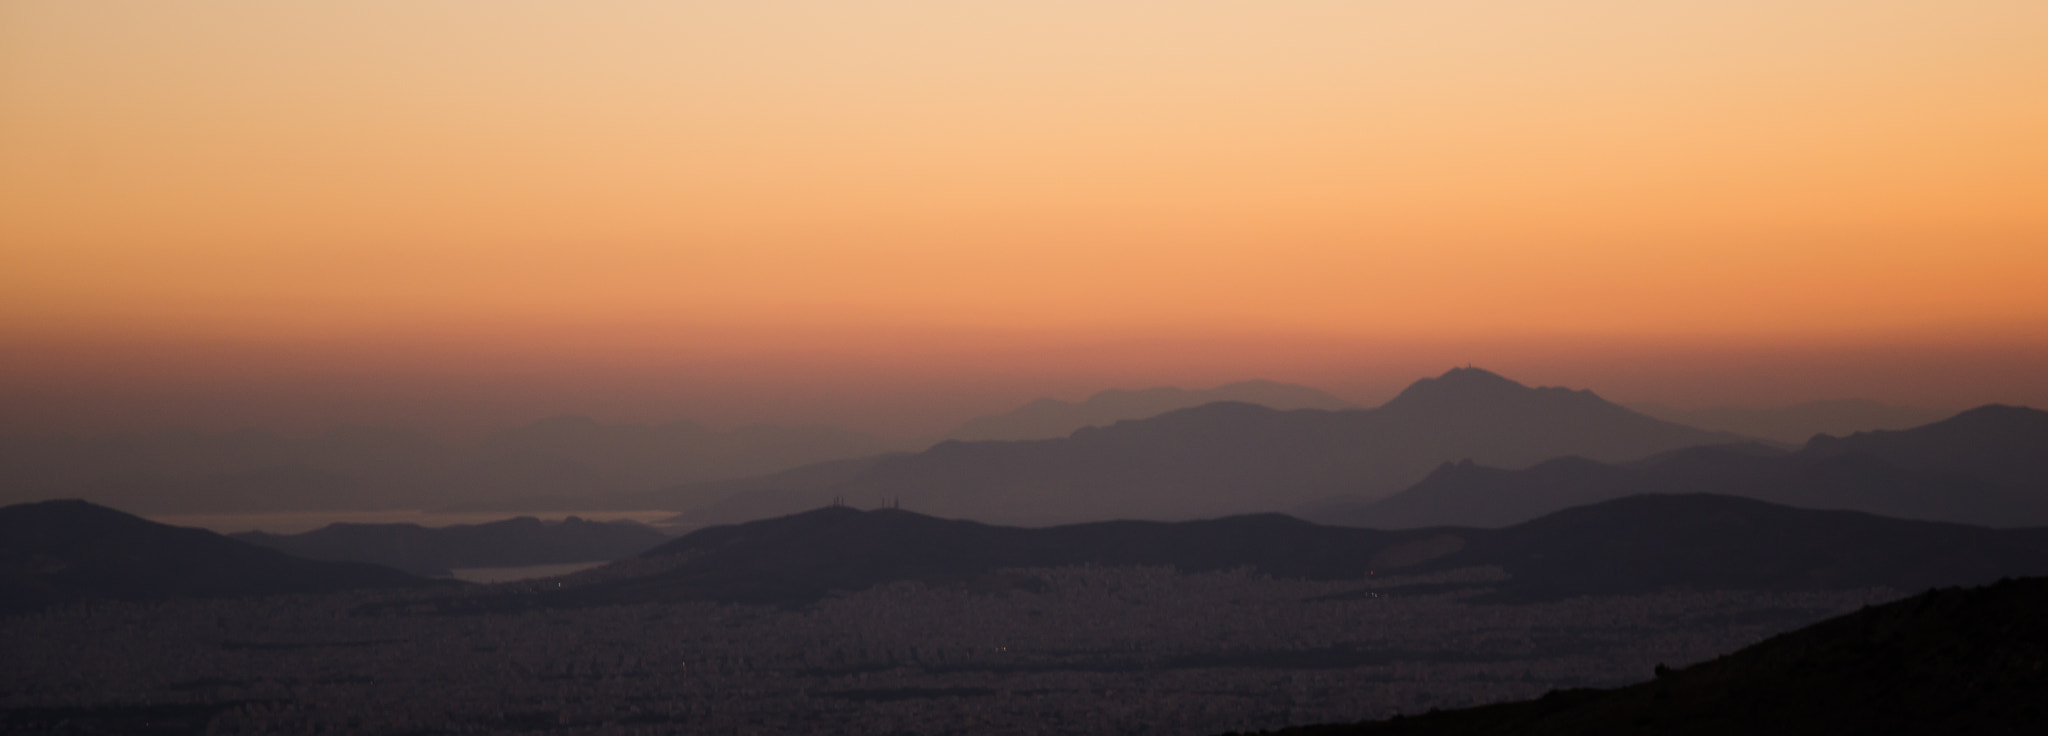 Photograph Athens sunset by Vaggelis Michopoulos on 500px